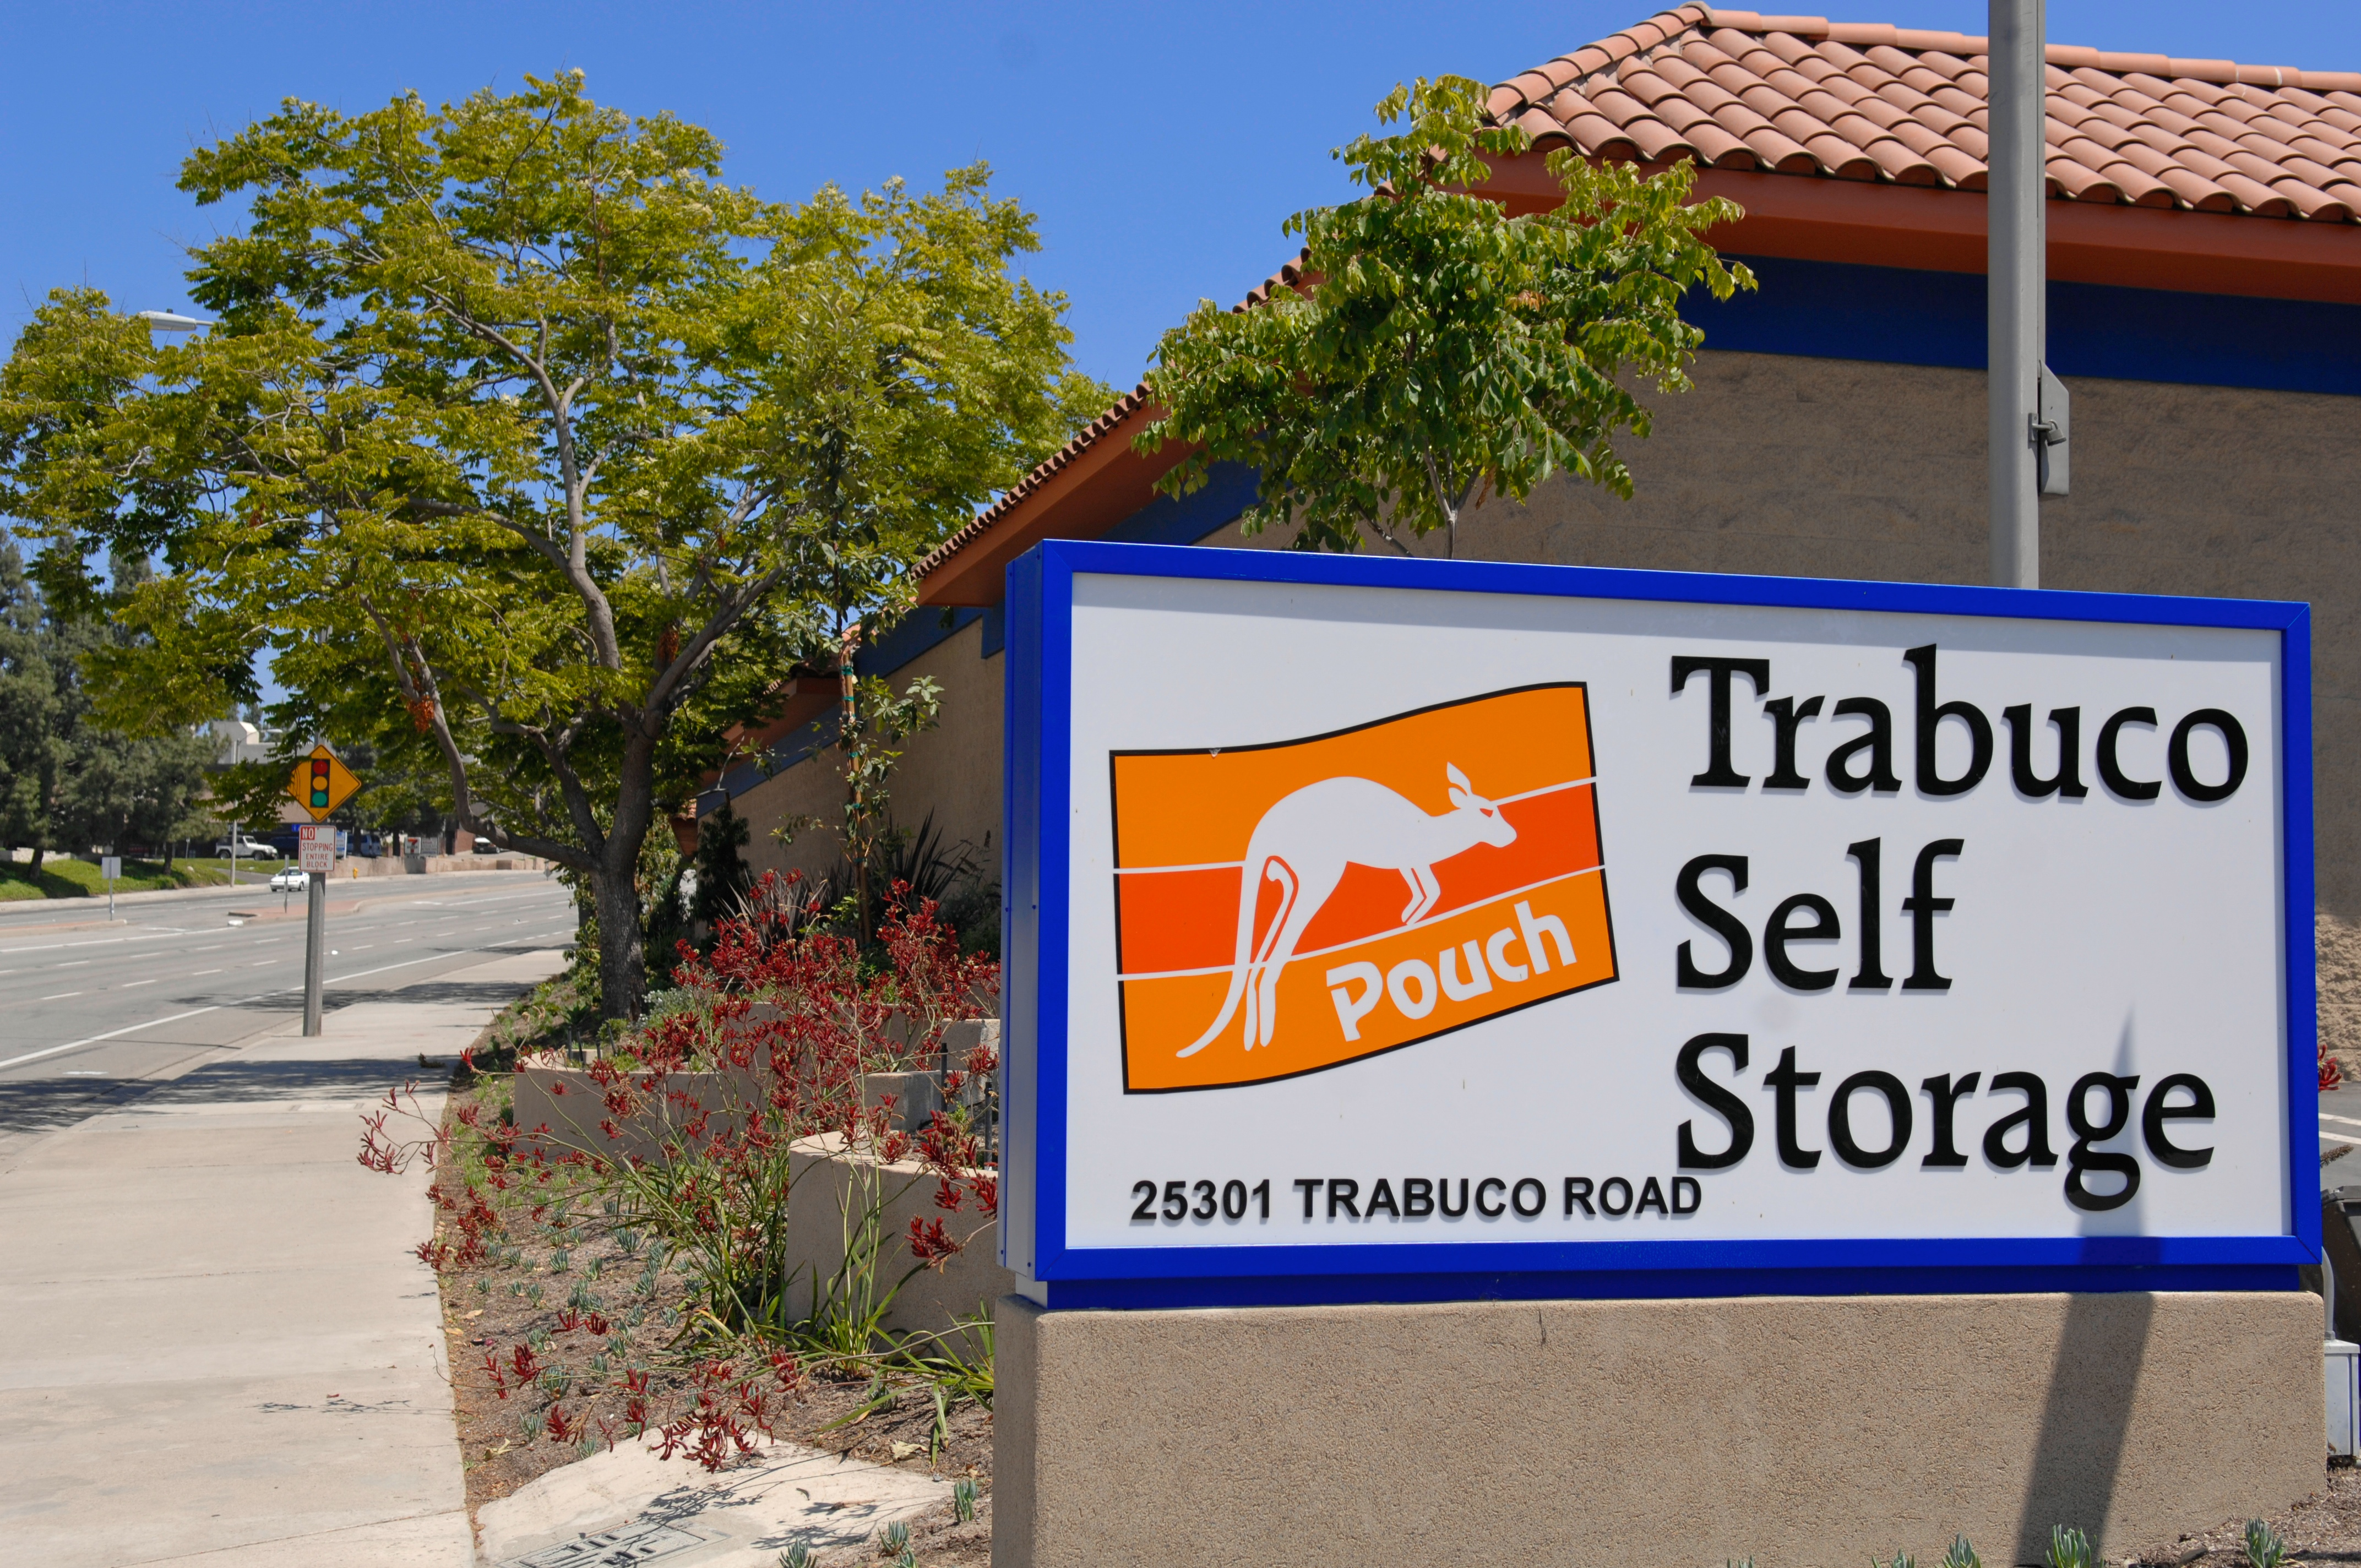 Trabuco Self Storage Lake Forest Coupons Near Me In Lake